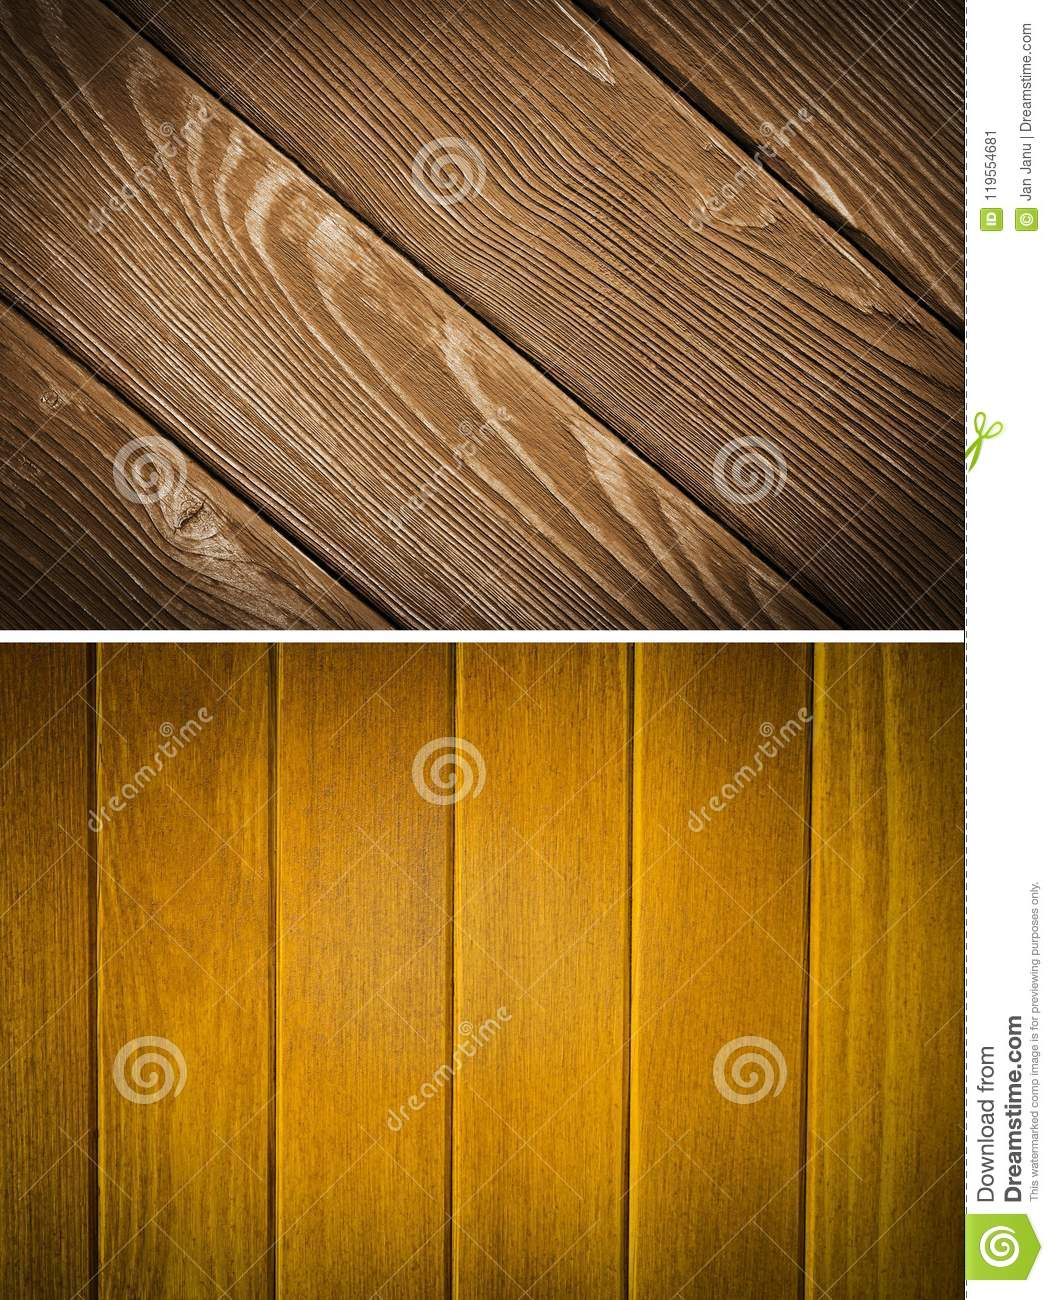 Wood Texture Stock Image. Image Of Table, Panel, Pine